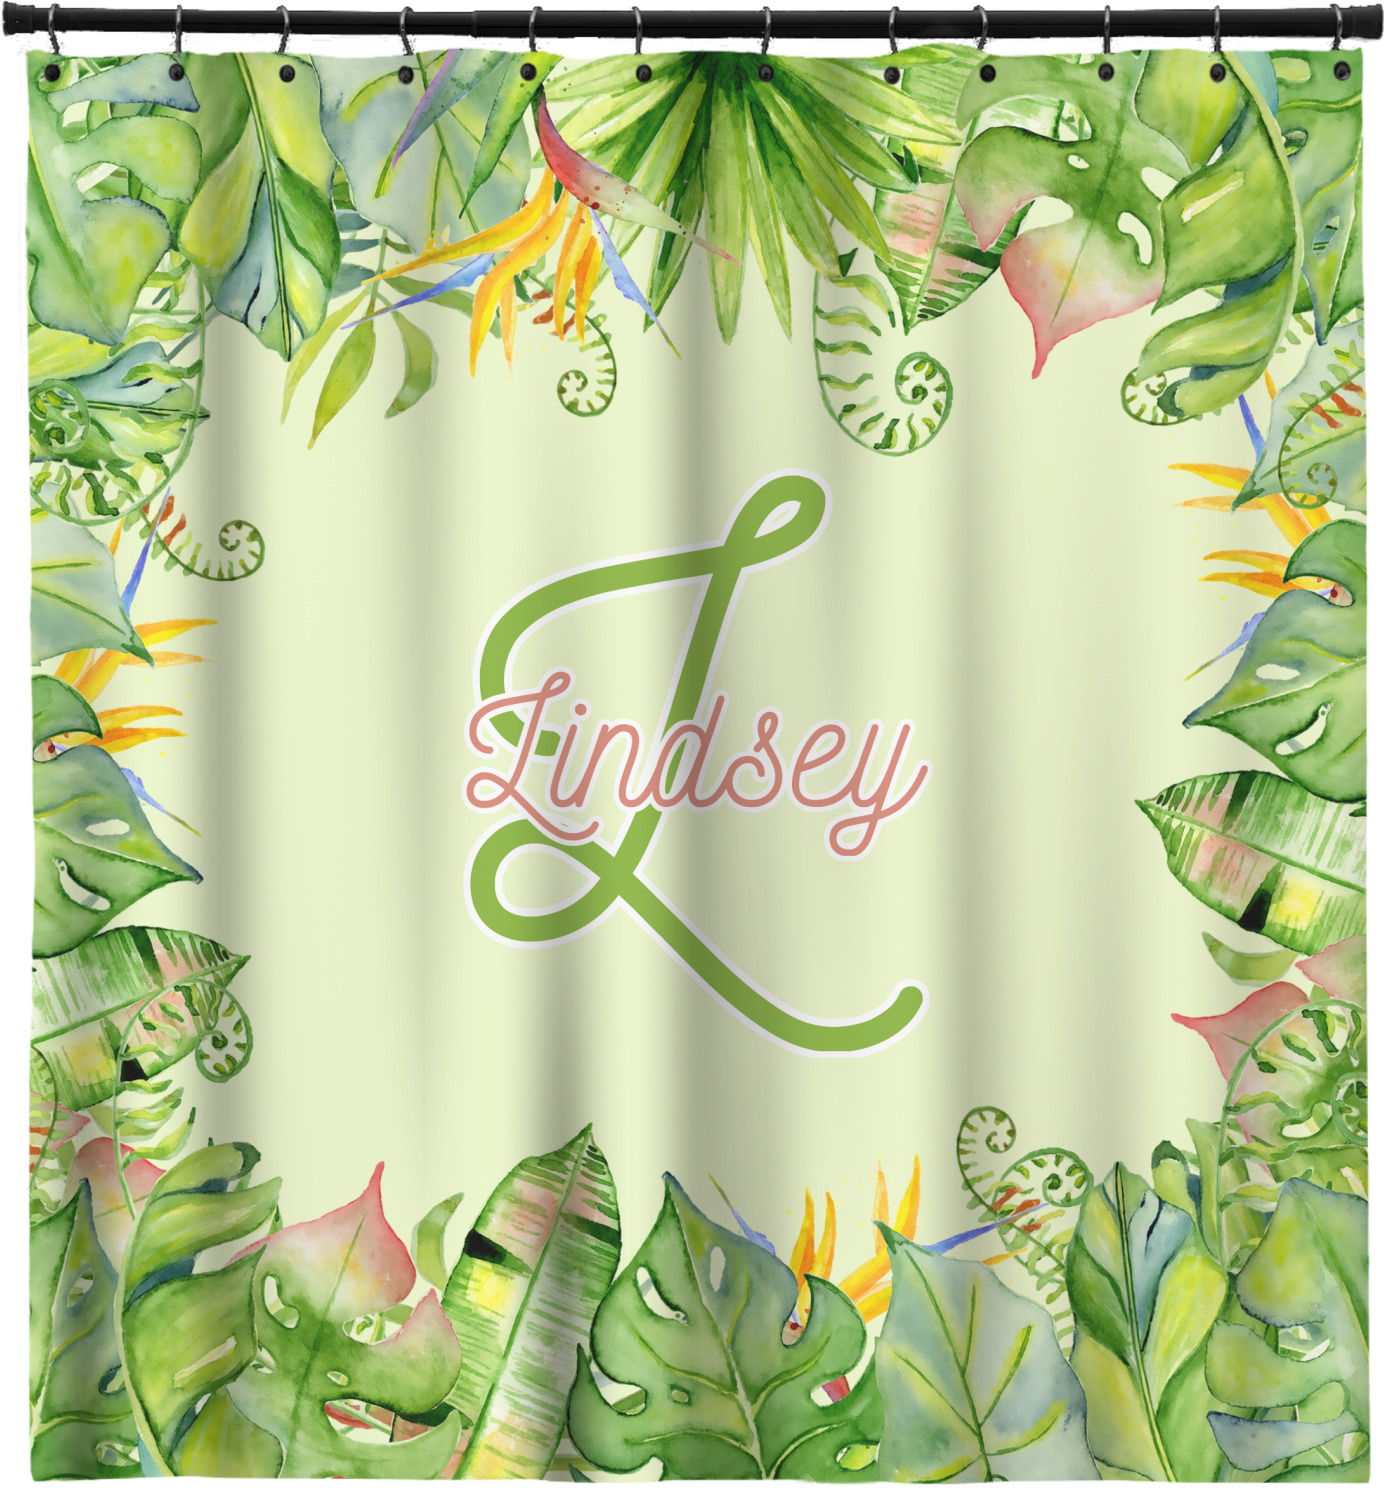 Tropical Leaves Border Shower Curtain (Personalized) - YouCustomizeIt